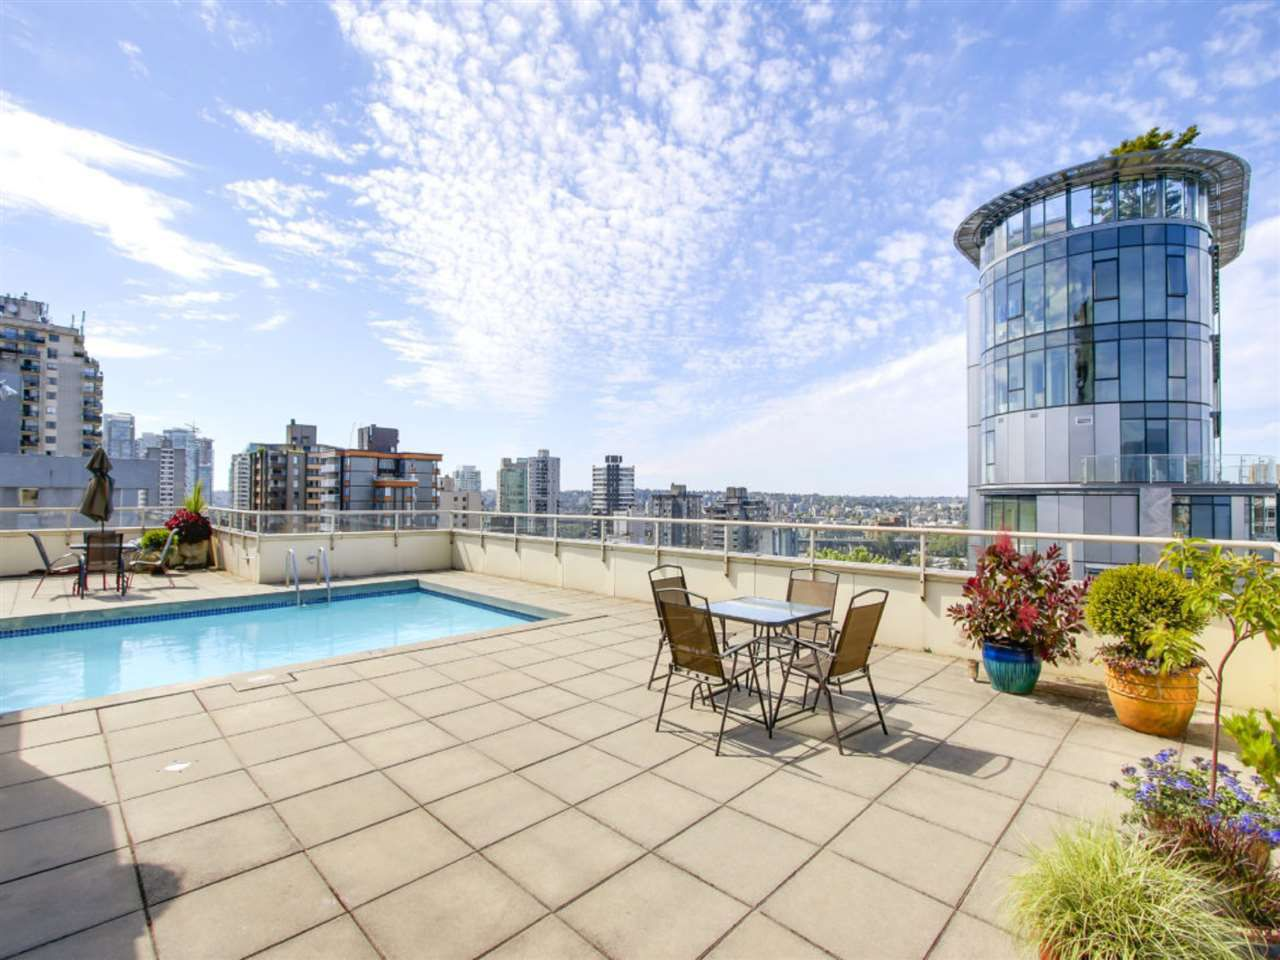 """Main Photo: 204 1250 N BURNABY Street in Vancouver: West End VW Condo for sale in """"THE HORIZON"""" (Vancouver West)  : MLS®# R2319344"""